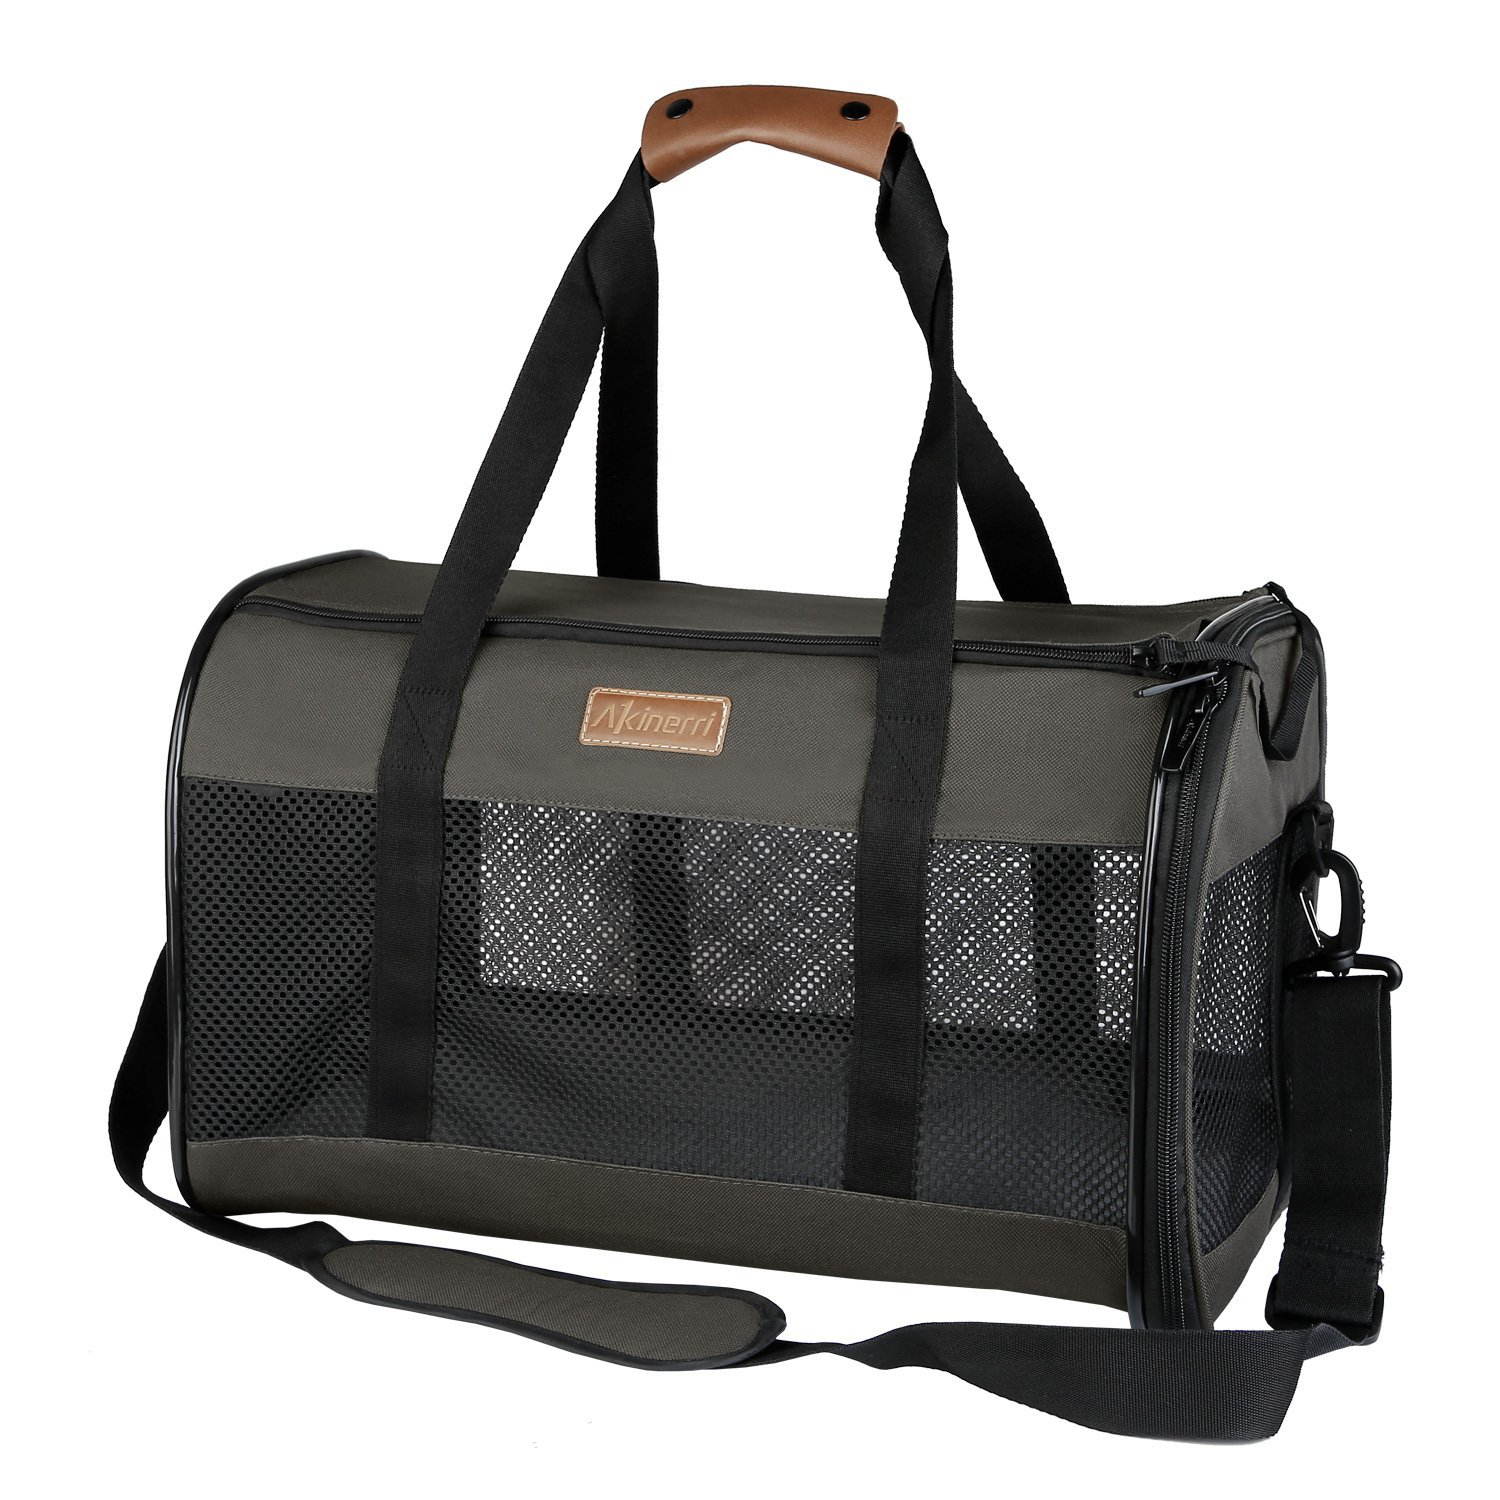 Akinerri Airline Approved Pet Carriers,Collapsible Soft Sided Pet Travel Carrier for Dogs and Cats (Large) by Akinerri